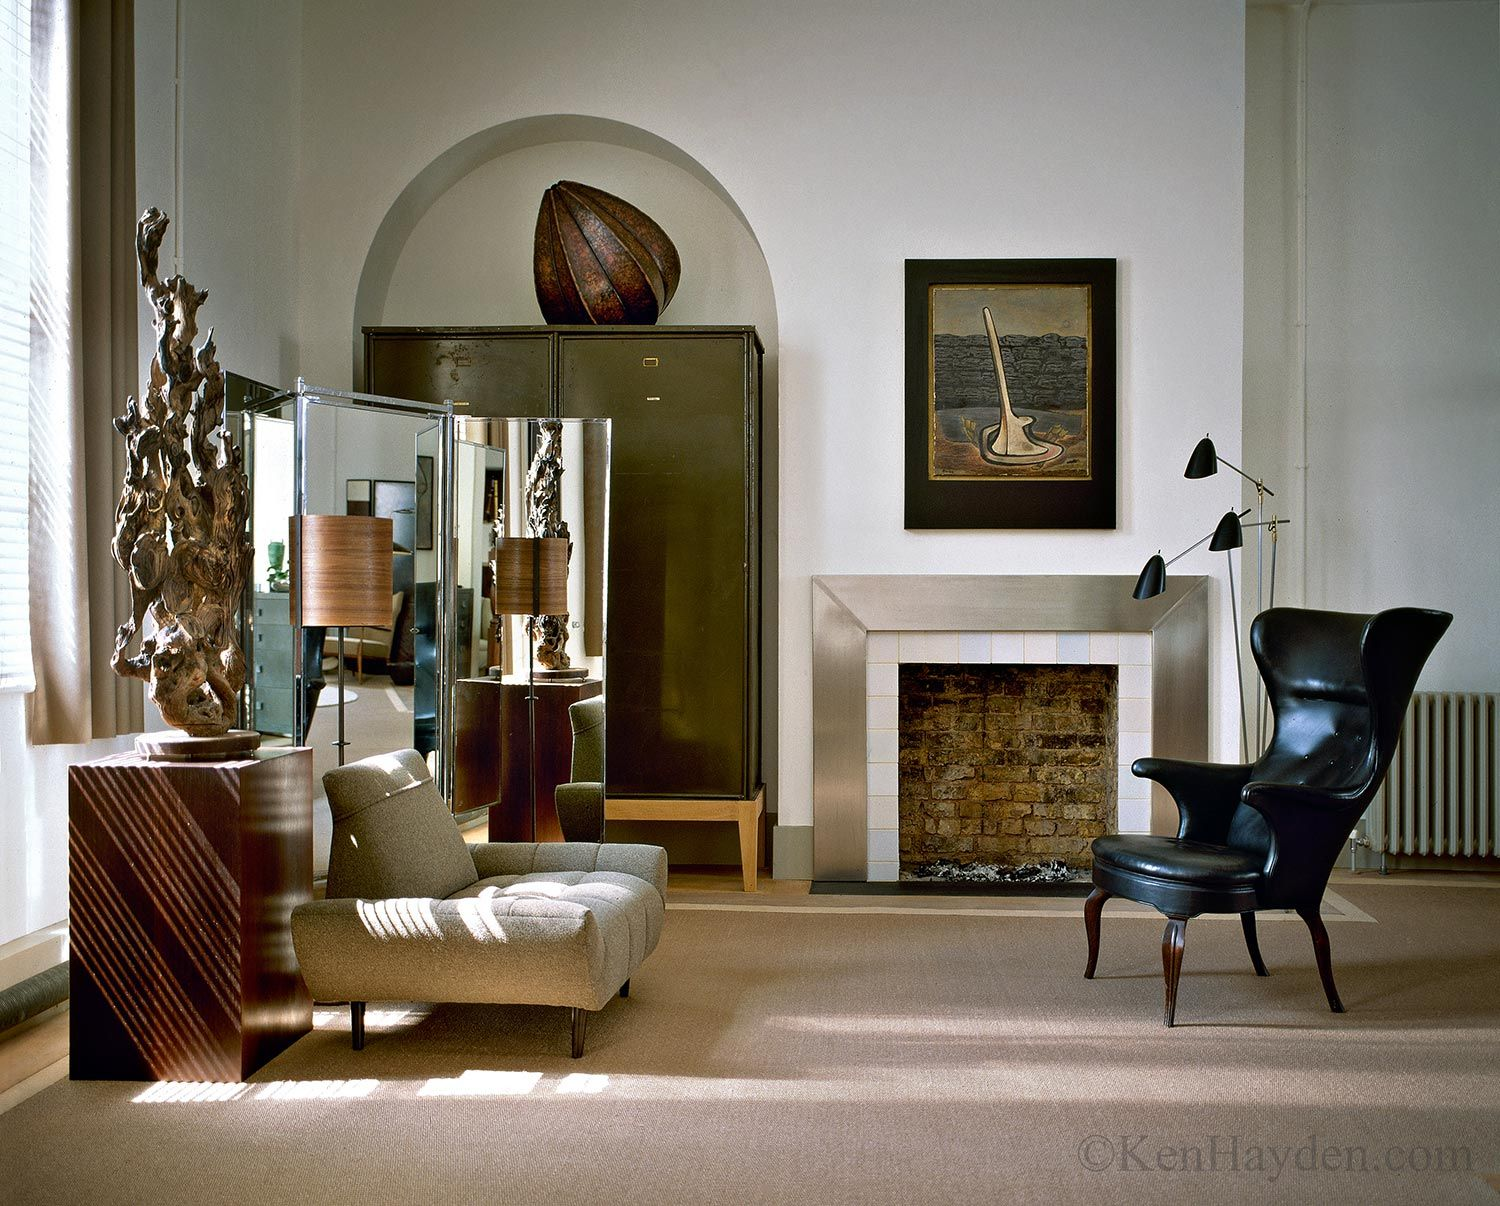 Studio reed jonathan reed s spare crafted interior design - Brick And Metal Modern Fireplace London Loft Jonathan Reed